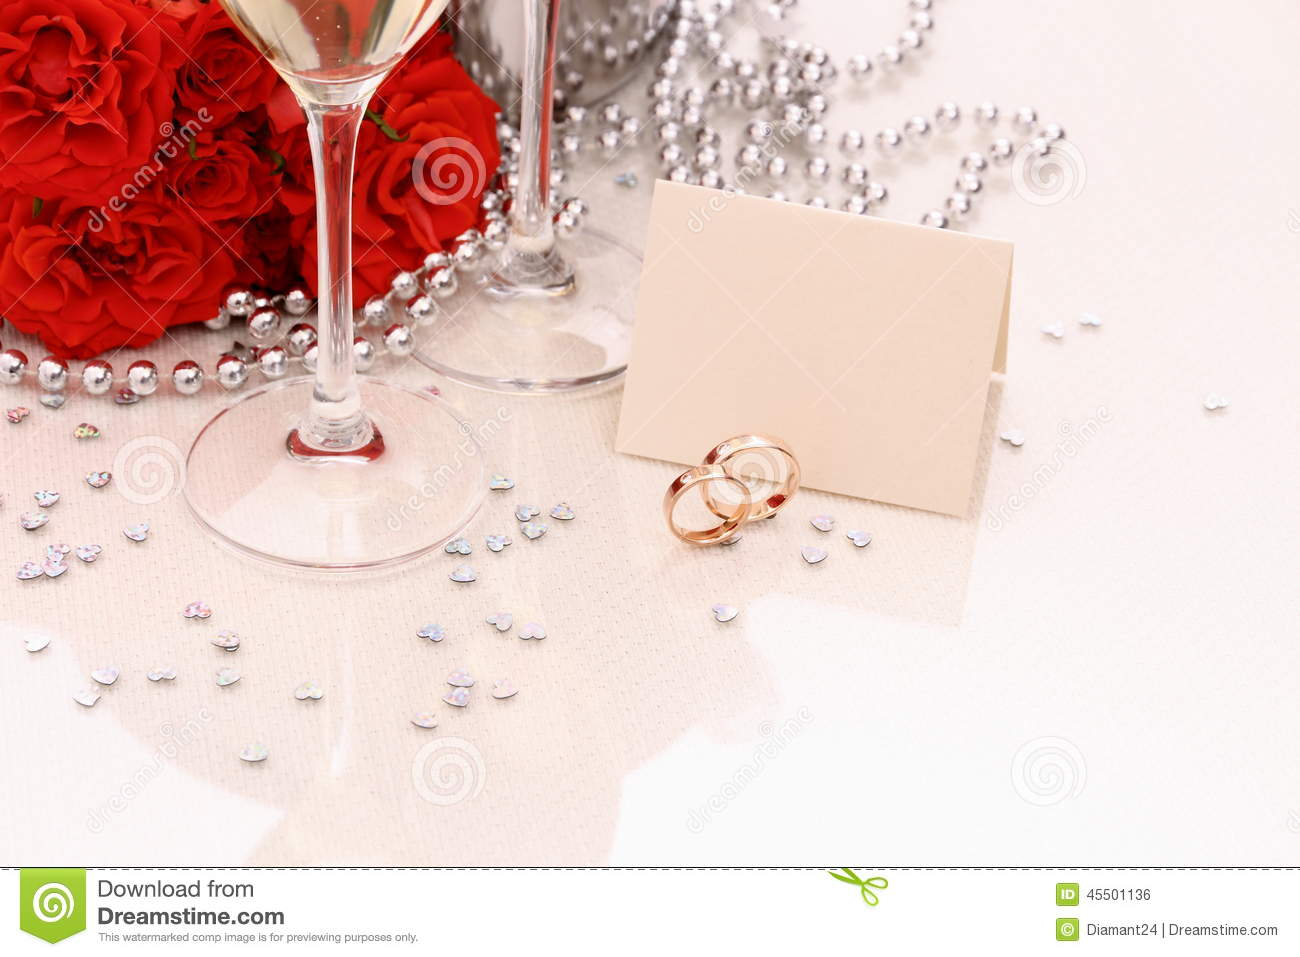 Two golden wedding rings with card, champagne glasses